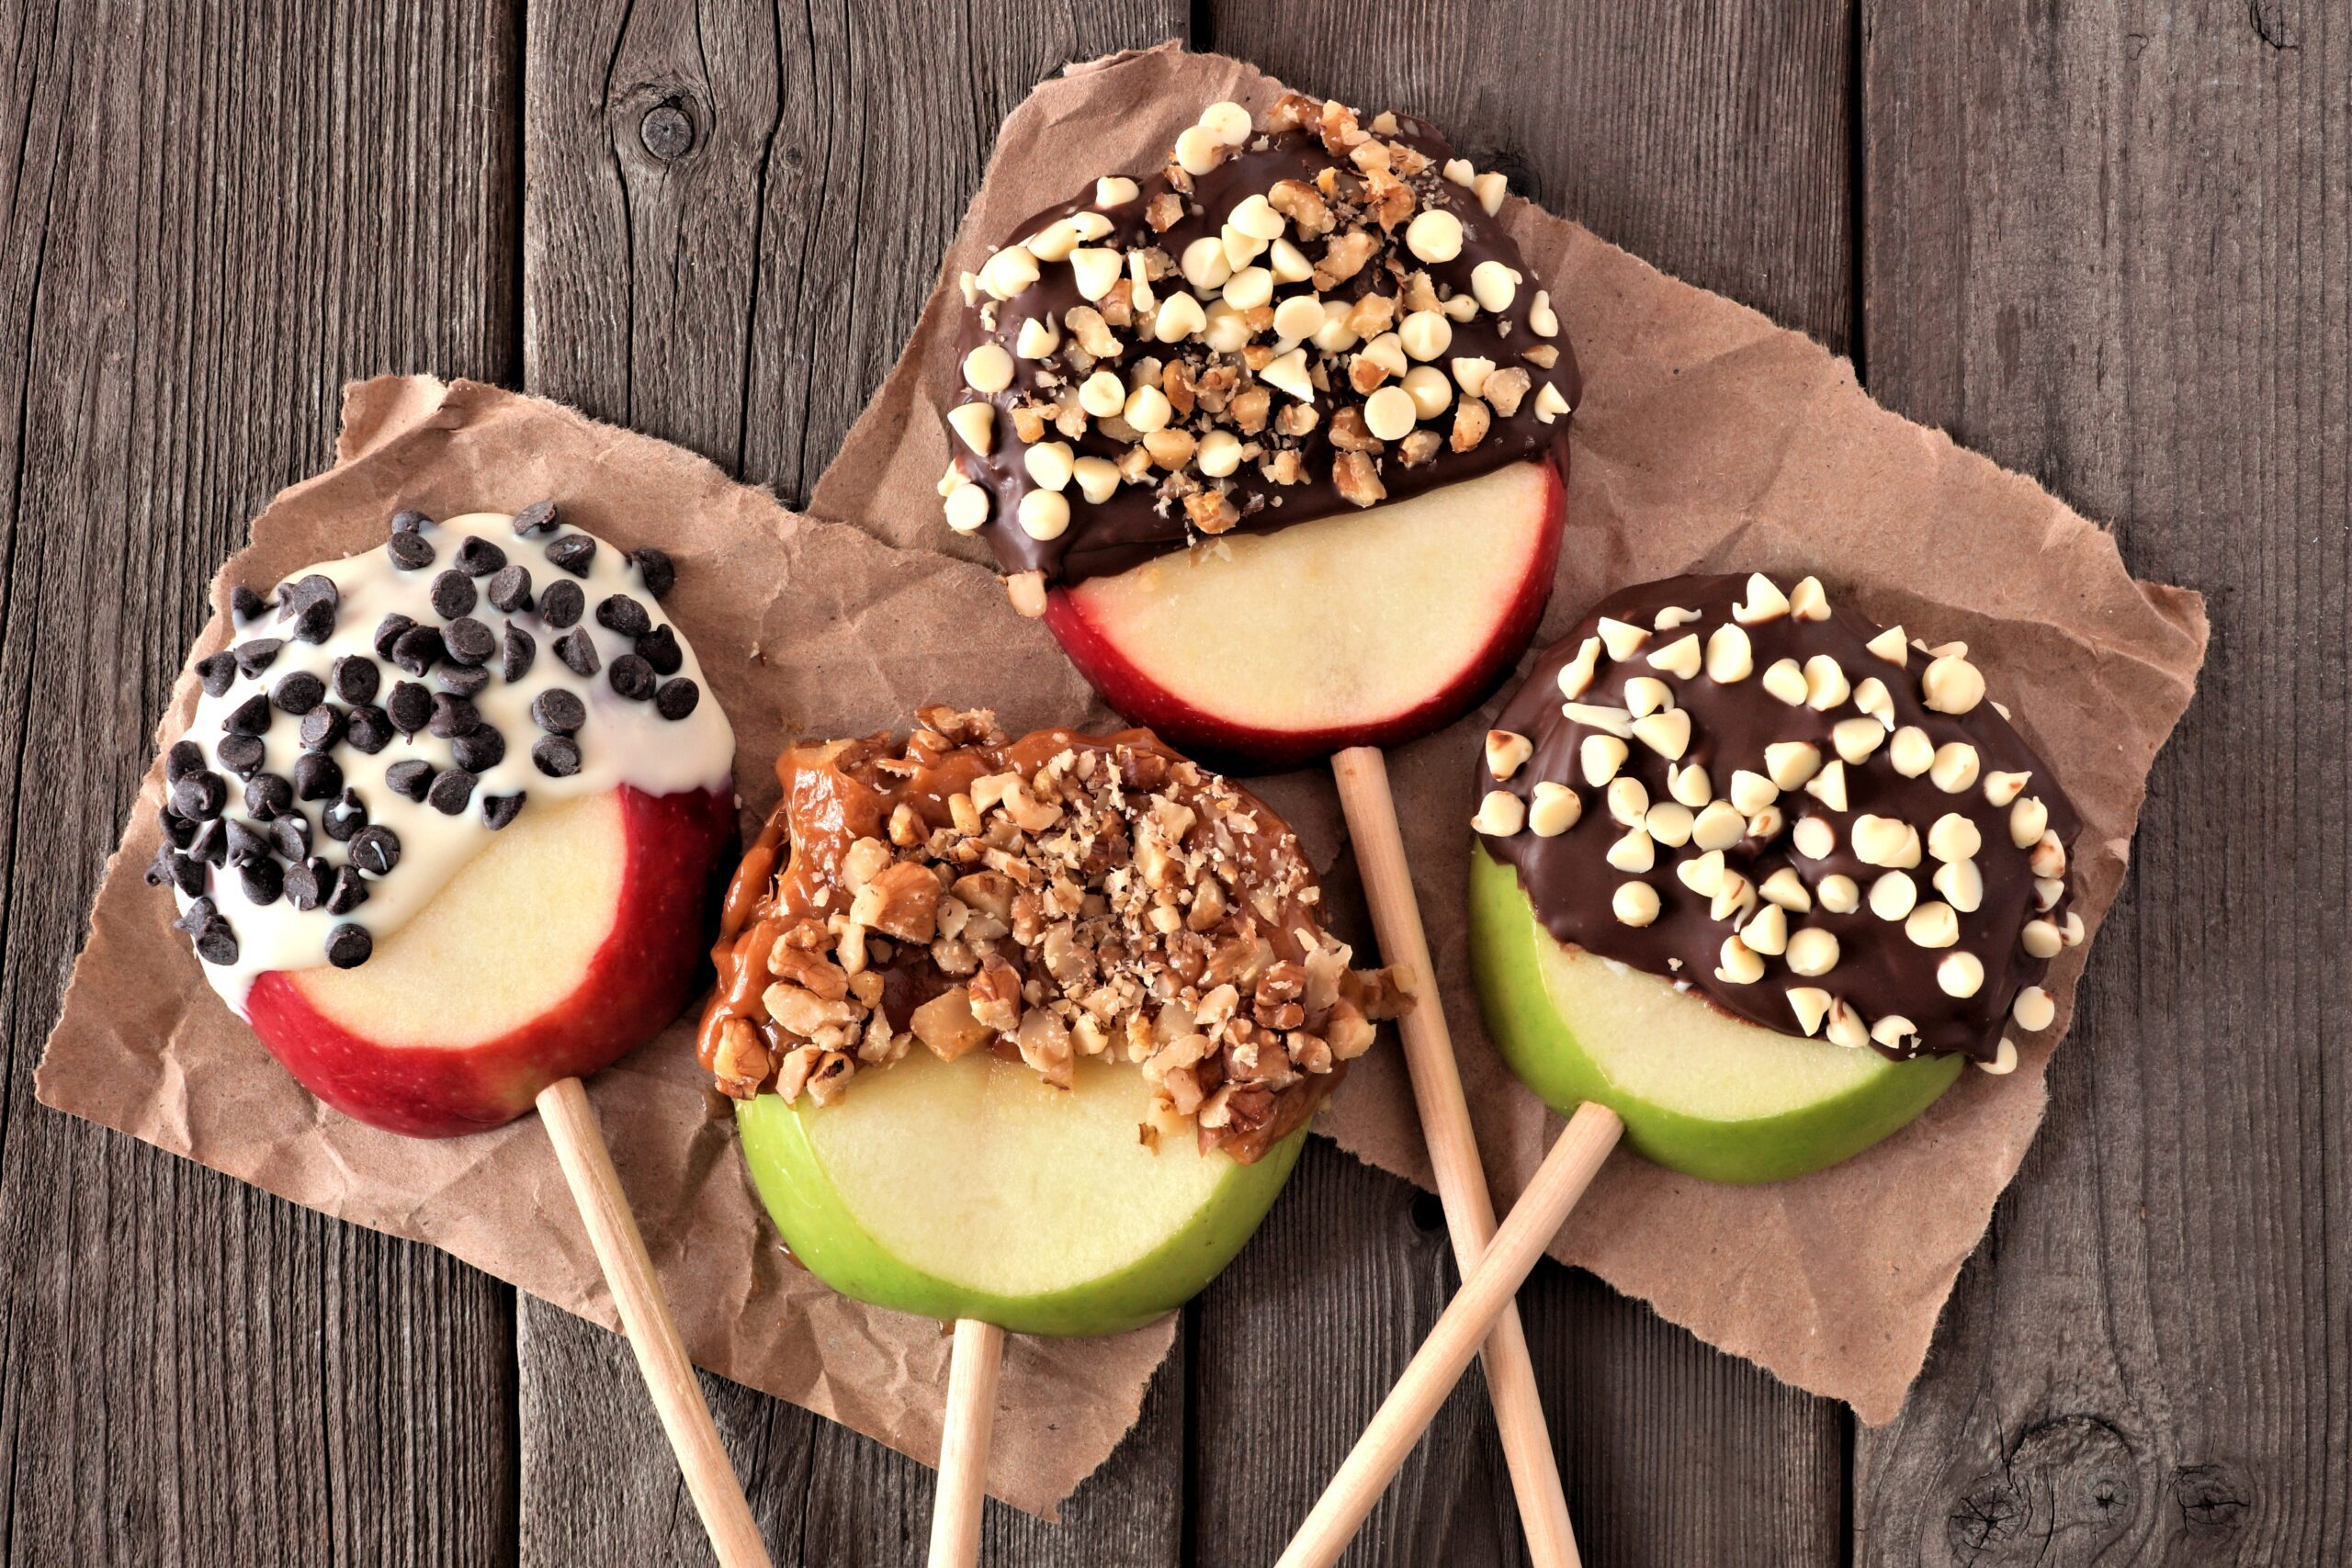 Chocolate dipped apples